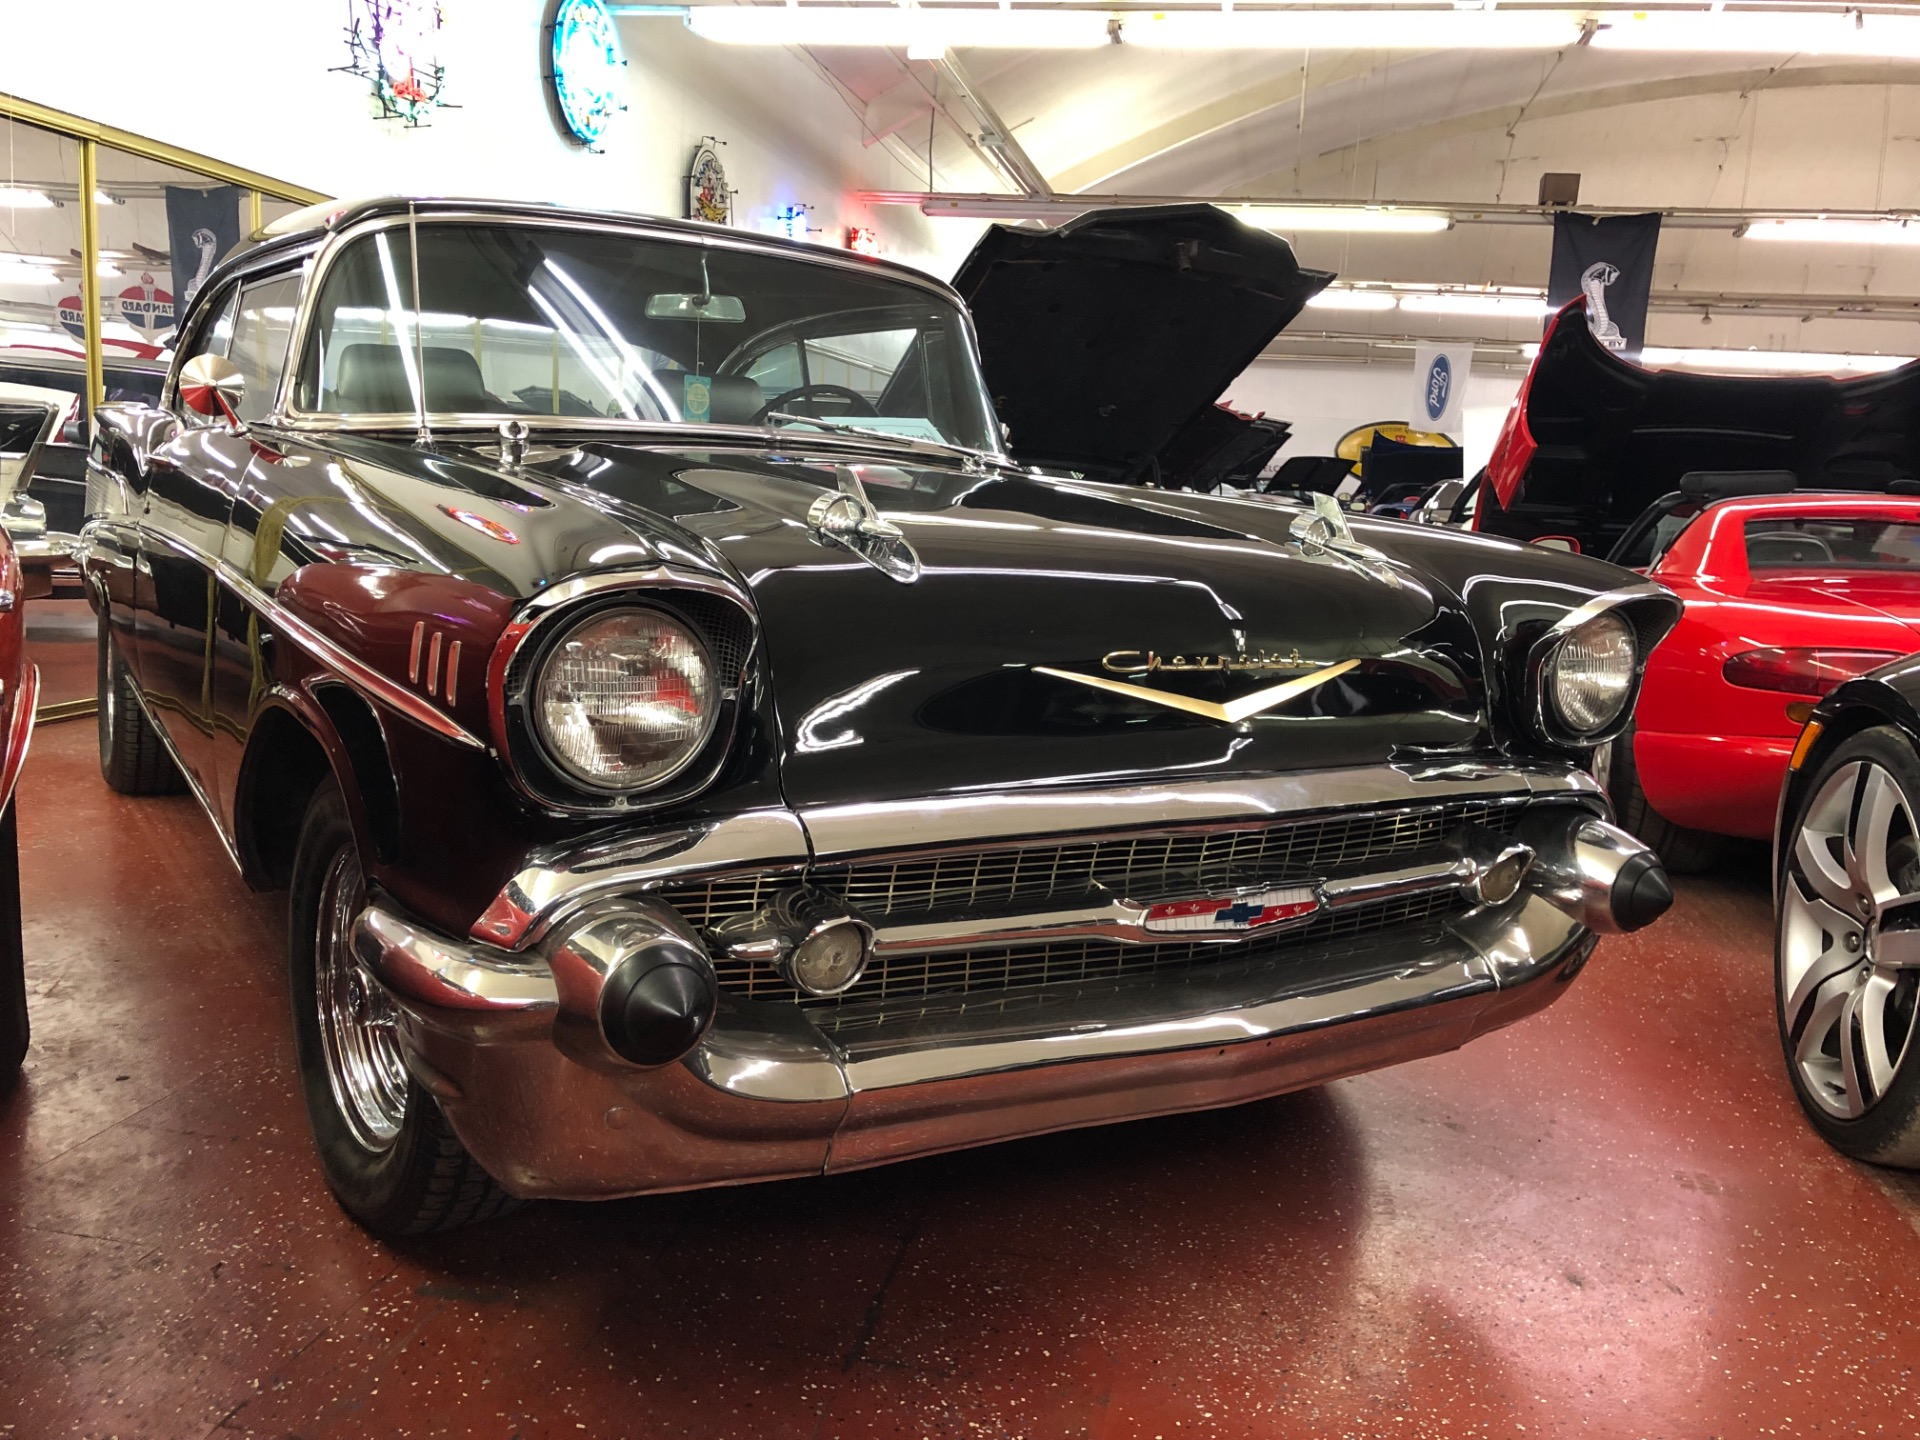 Used 1957 Chevrolet Bel Air -American Classic Hot Rod-Cragers-Same owner 35 years- | Mundelein, IL